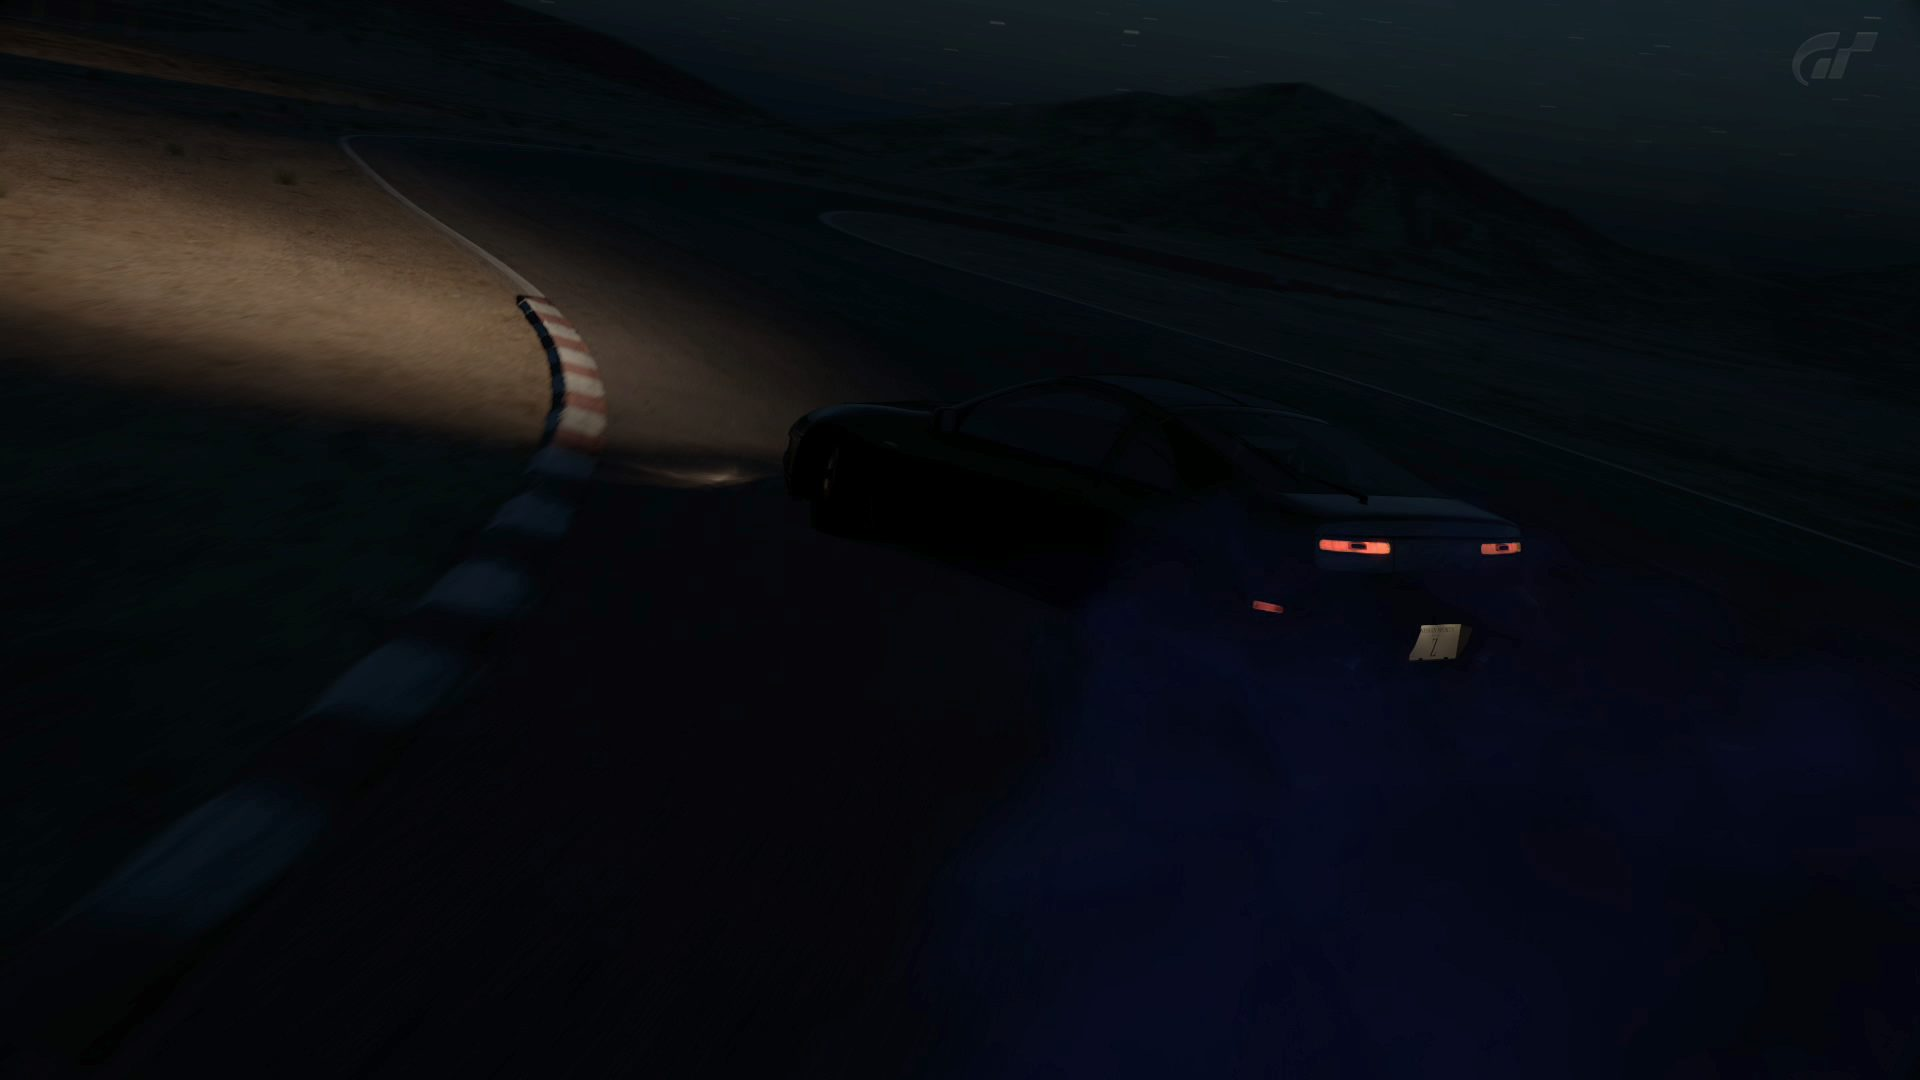 Willow Springs International Raceway_ Streets of Willow Springs_4 Edit.jpg